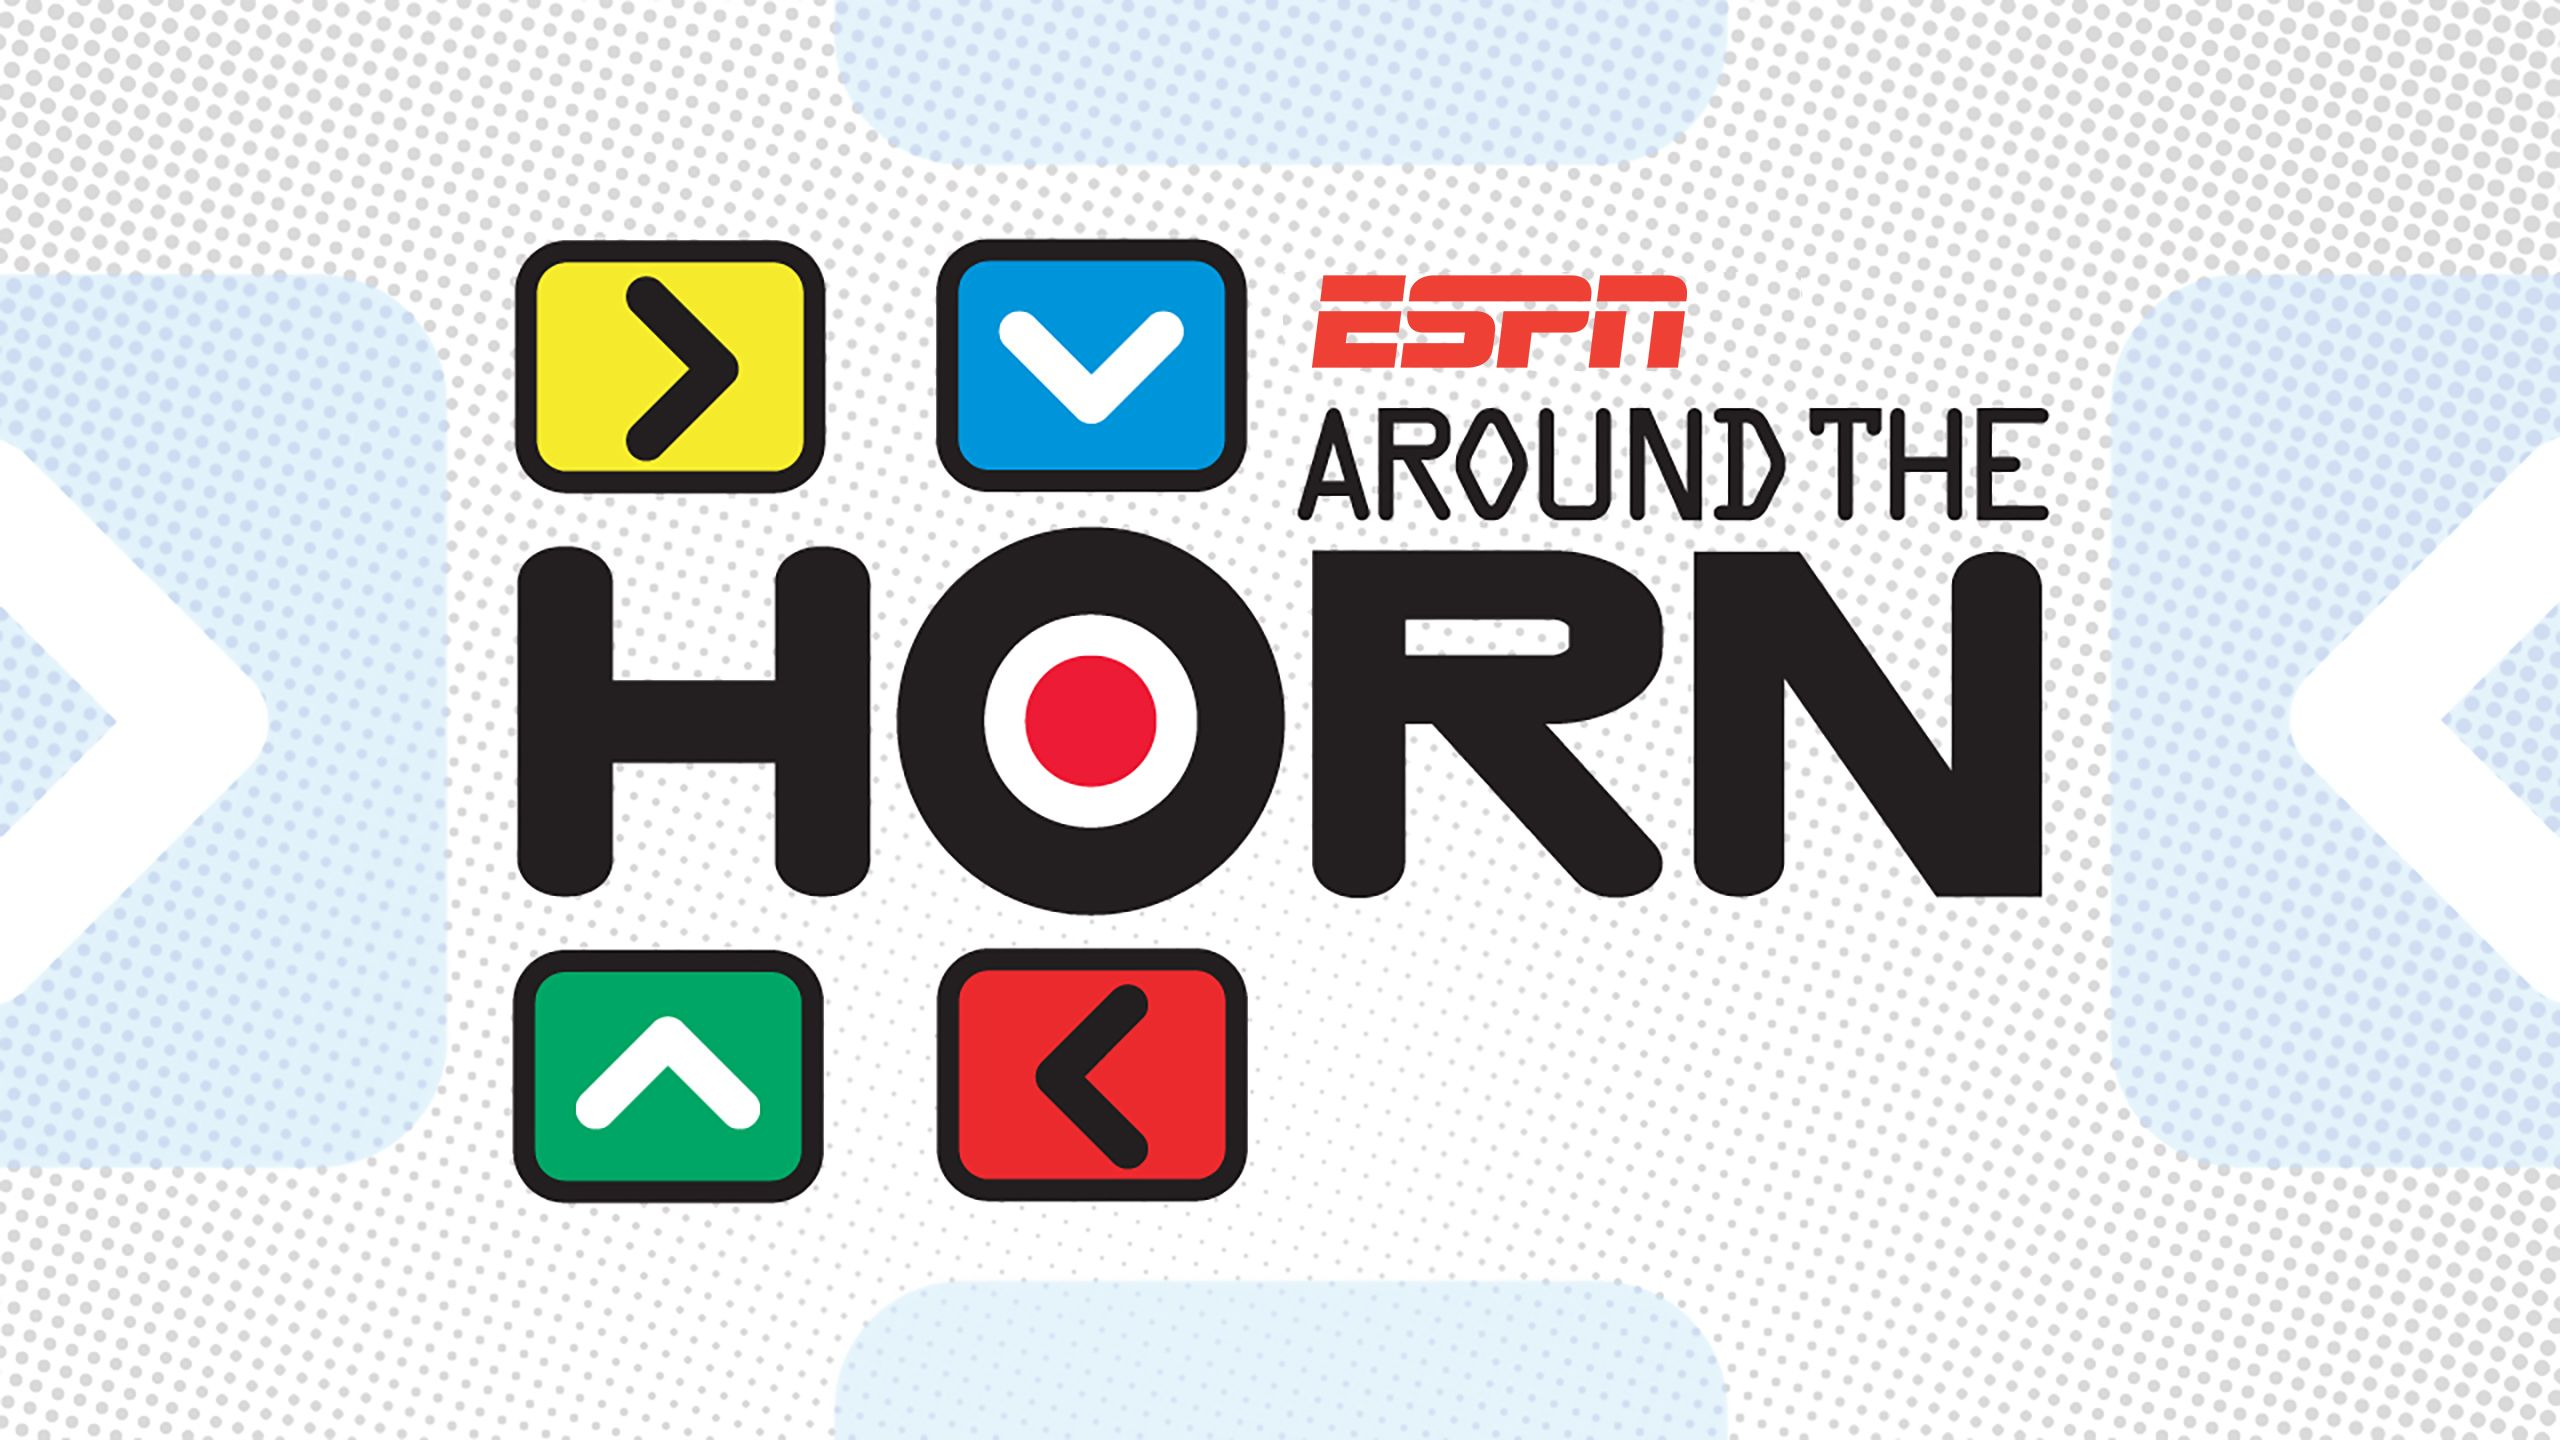 Thu, 12/14 - Around The Horn